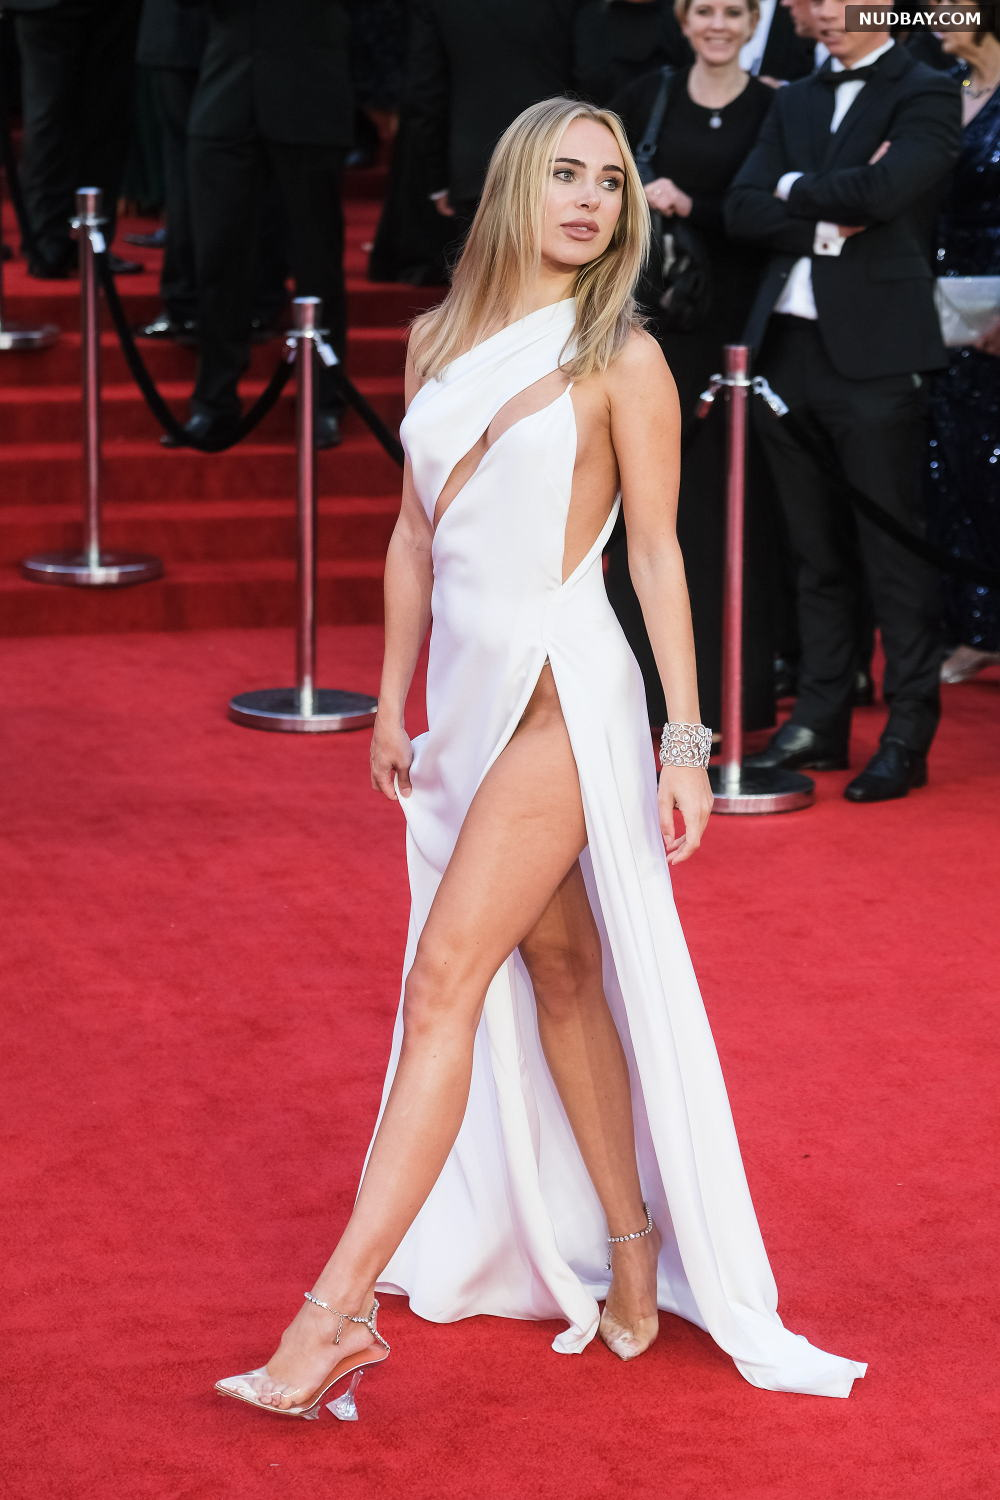 Kimberley Garner leggy at the premiere of No Time To Die in London September 28 2021